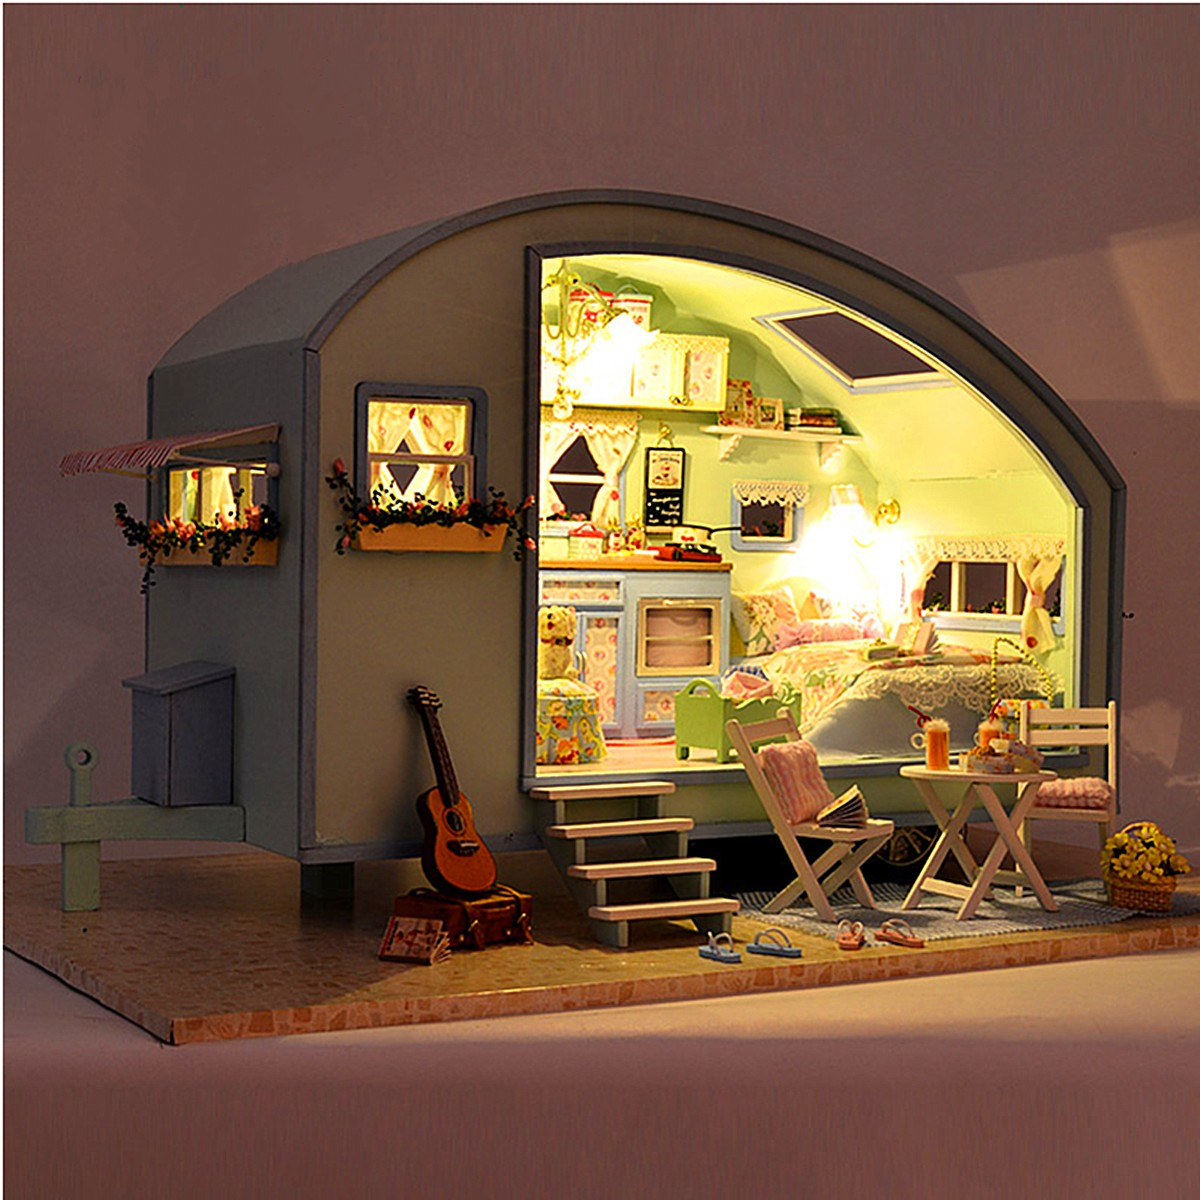 Cuteroom DIY Wooden Dollhouse Miniature Kit Doll house LED+Music+Voice ...